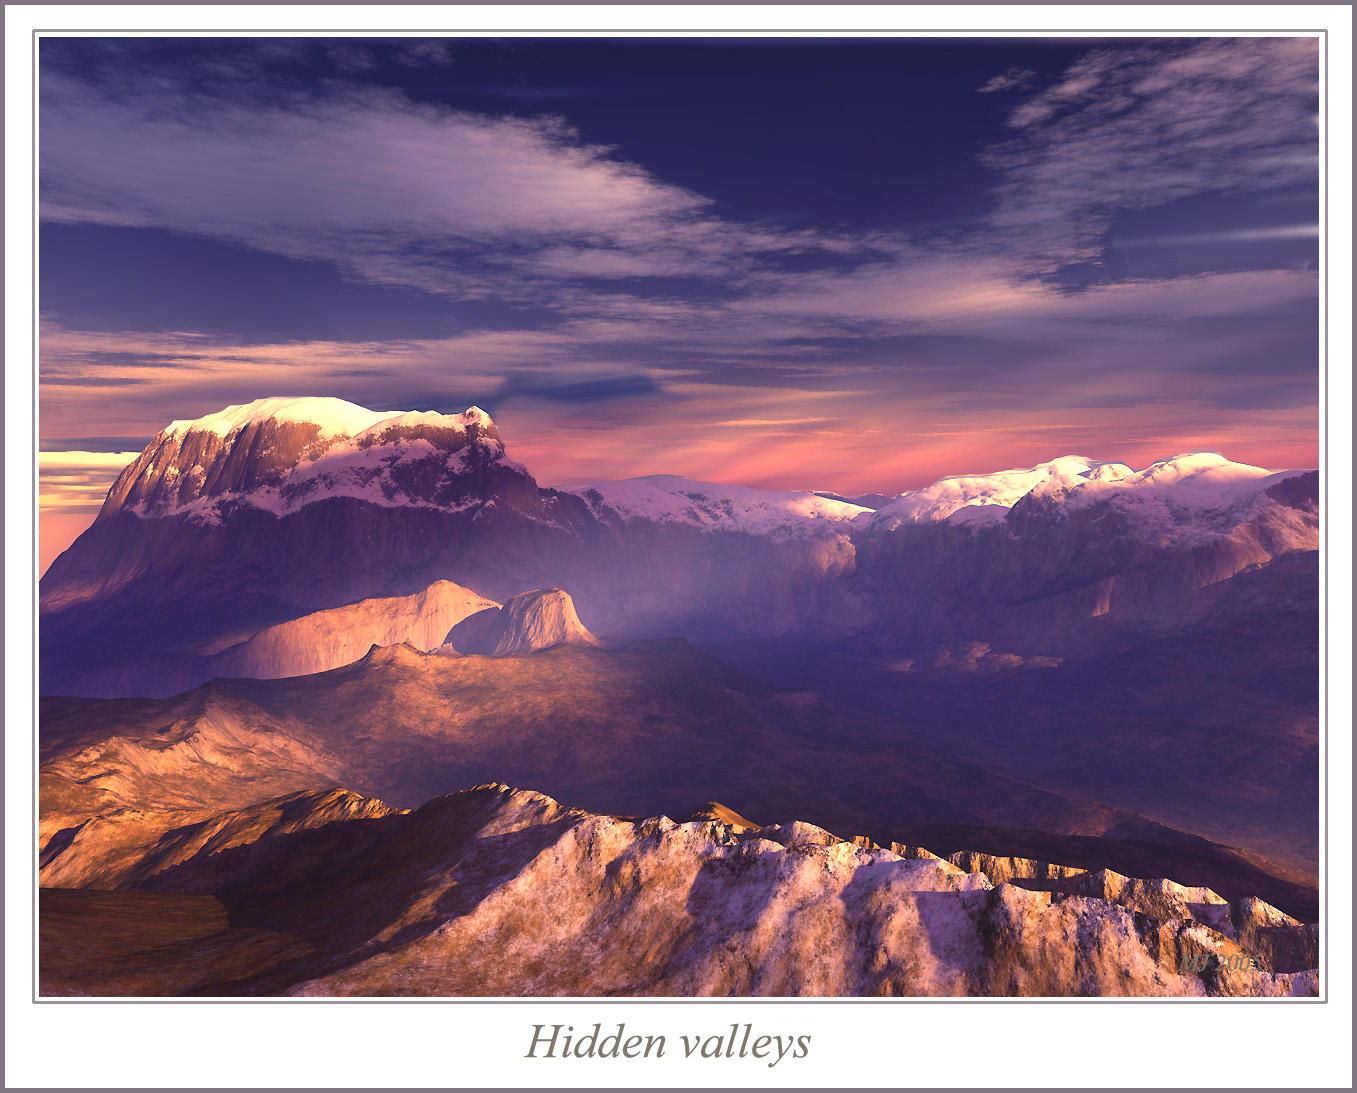 Hidden valleys by sandpiper6